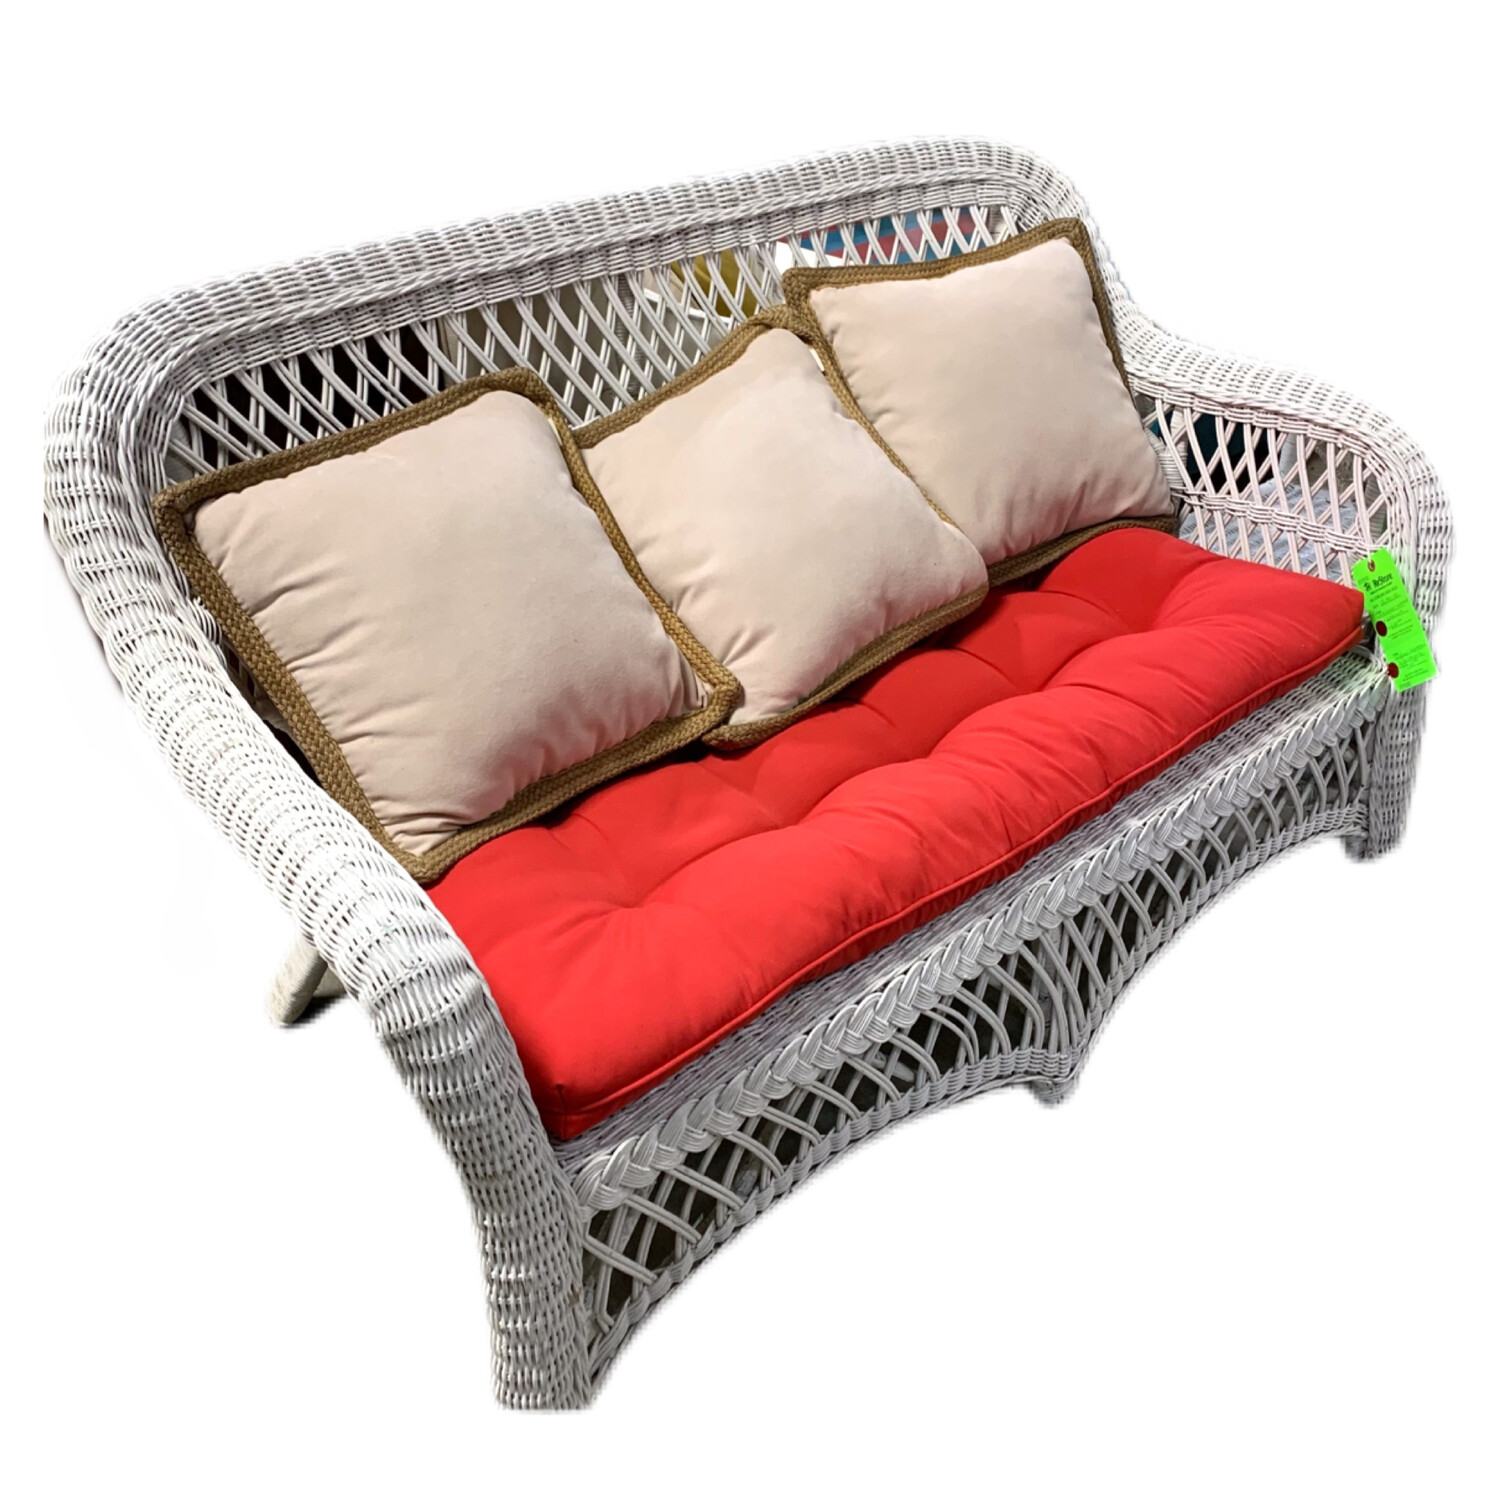 White Wicker Loveseat With 4 Cushions